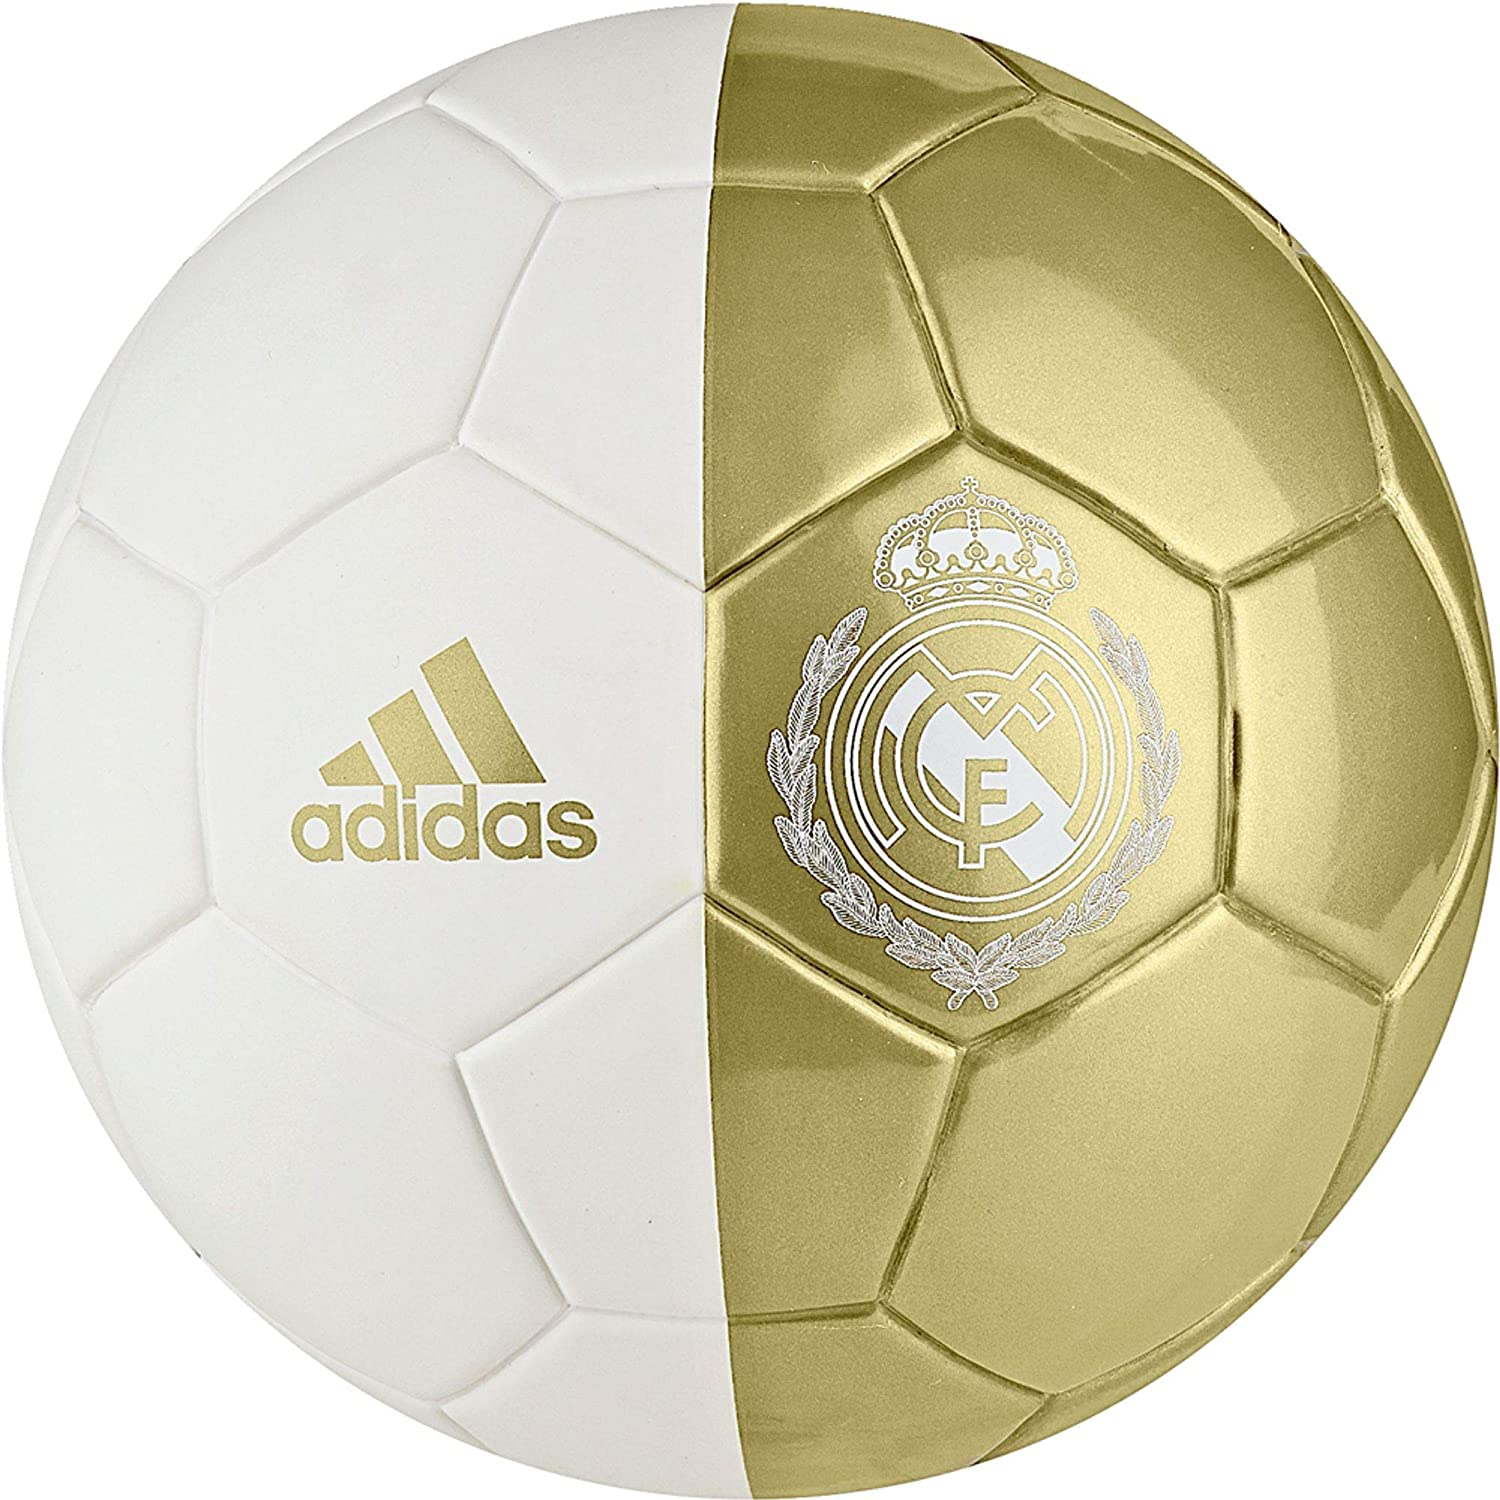 adidas - Mini Balón De Fútbol Real Madrid CF 2019-2020: Amazon.es ...